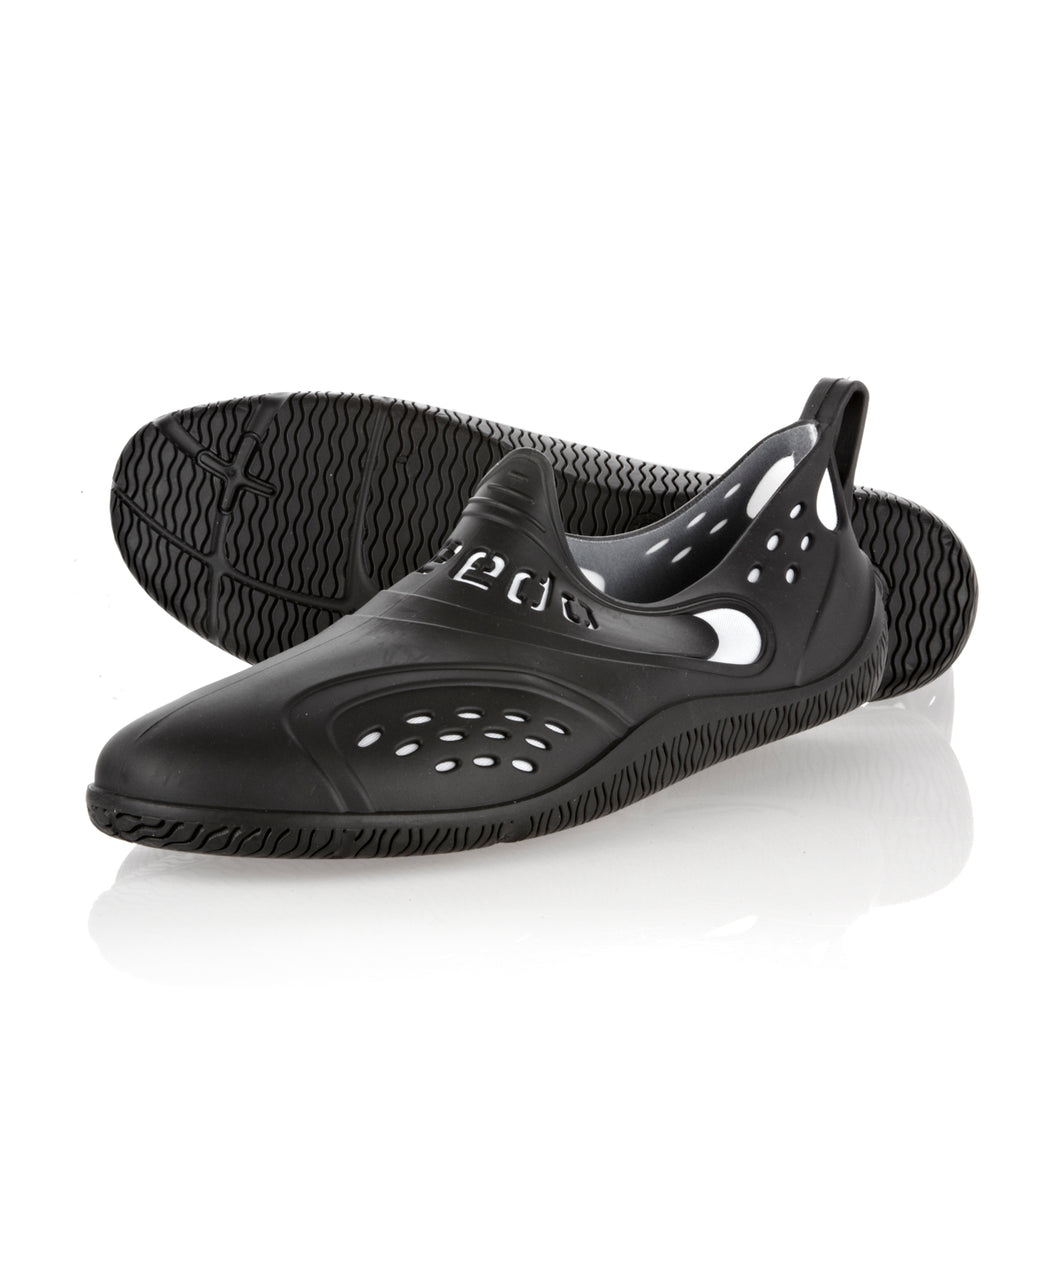 Male Zanpa Aqua Shoes (Black)